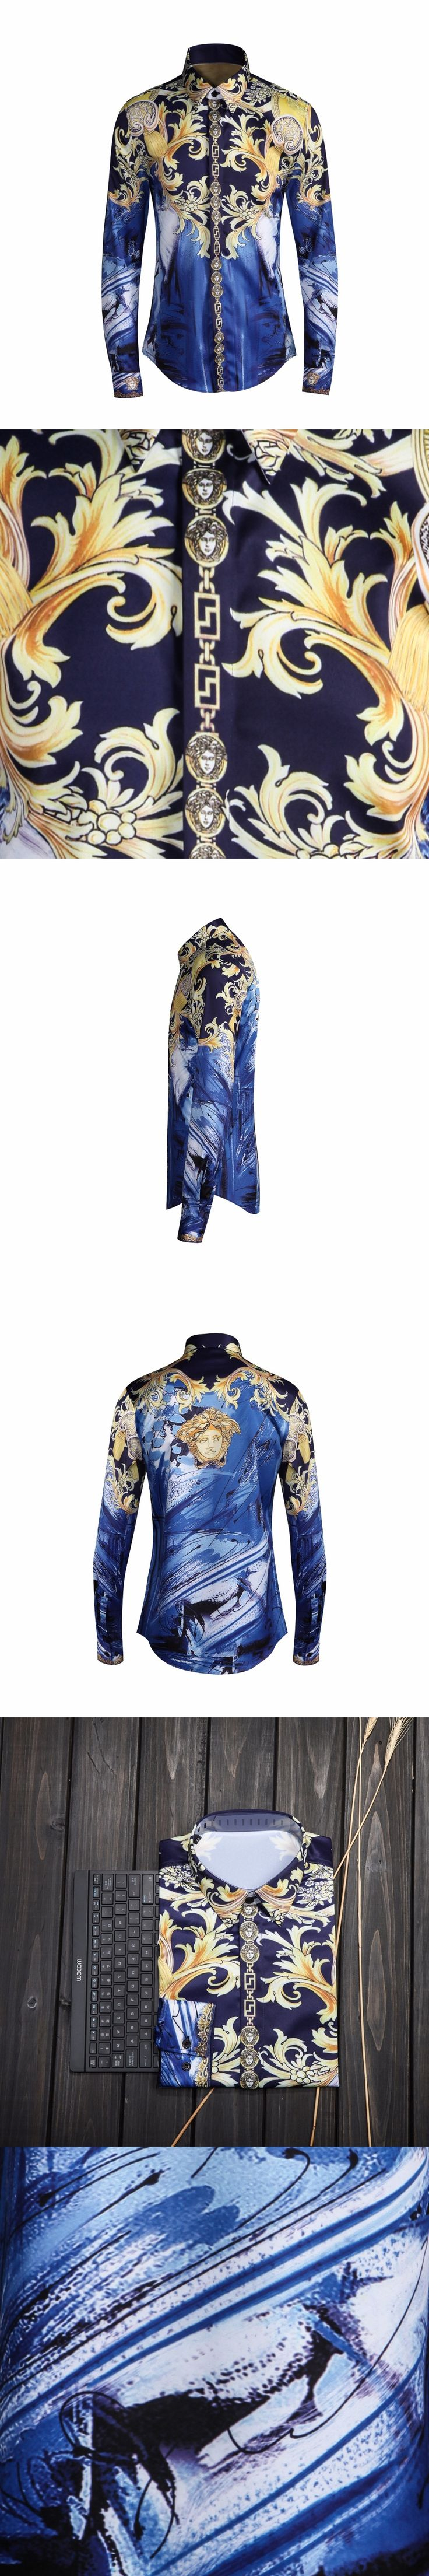 Luxury Shirt Men Dress 2017 New Arrival Autumn quality Shirts 3D Printed Cotton Long Sleeve Clothing Slim Fit camisa masculina